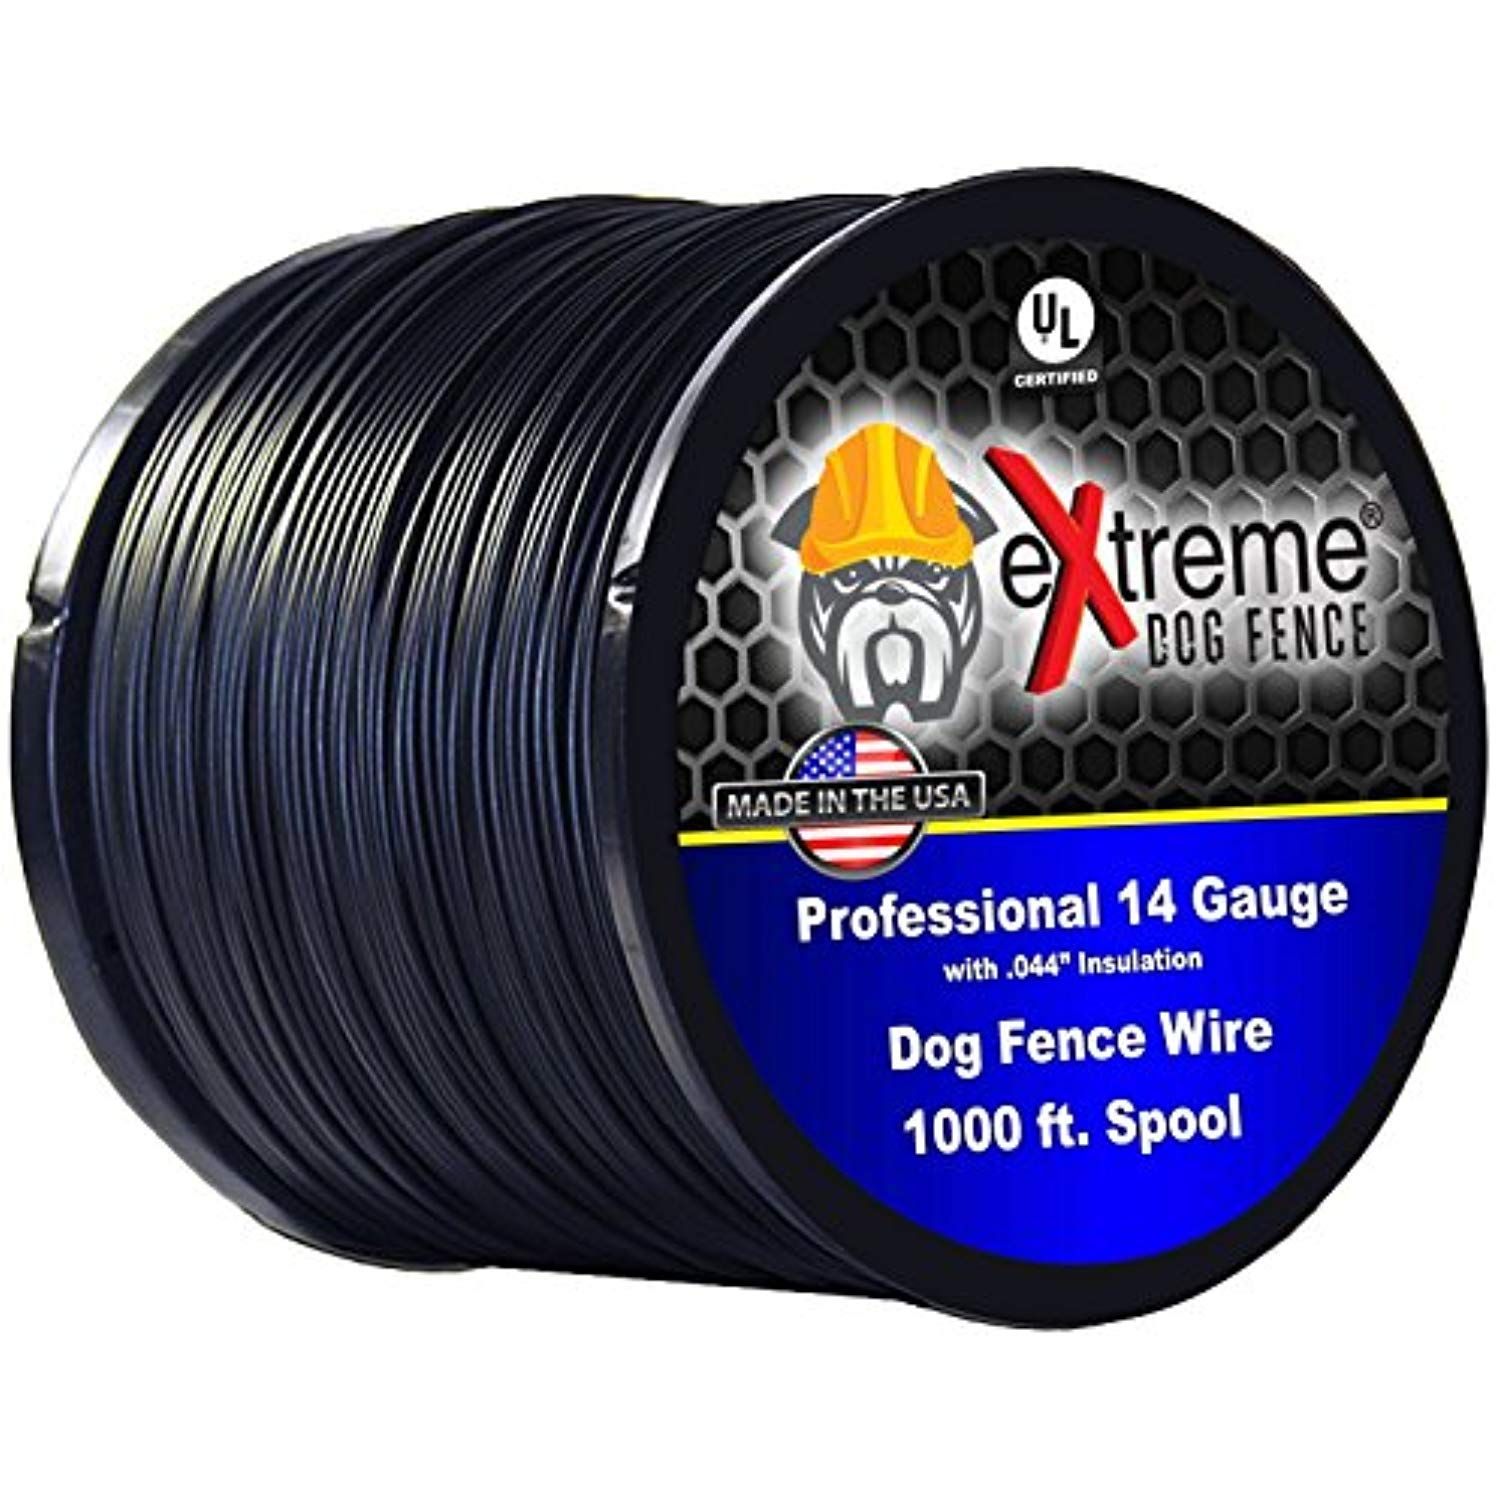 Dog Fence Wire Pure Copper 1000 Feet Of 14 Gauge 044 Professional Grade Electric Dog Fence Boundary Wire Solid Copper Core Wire Fence Pet Fence Dog Fence